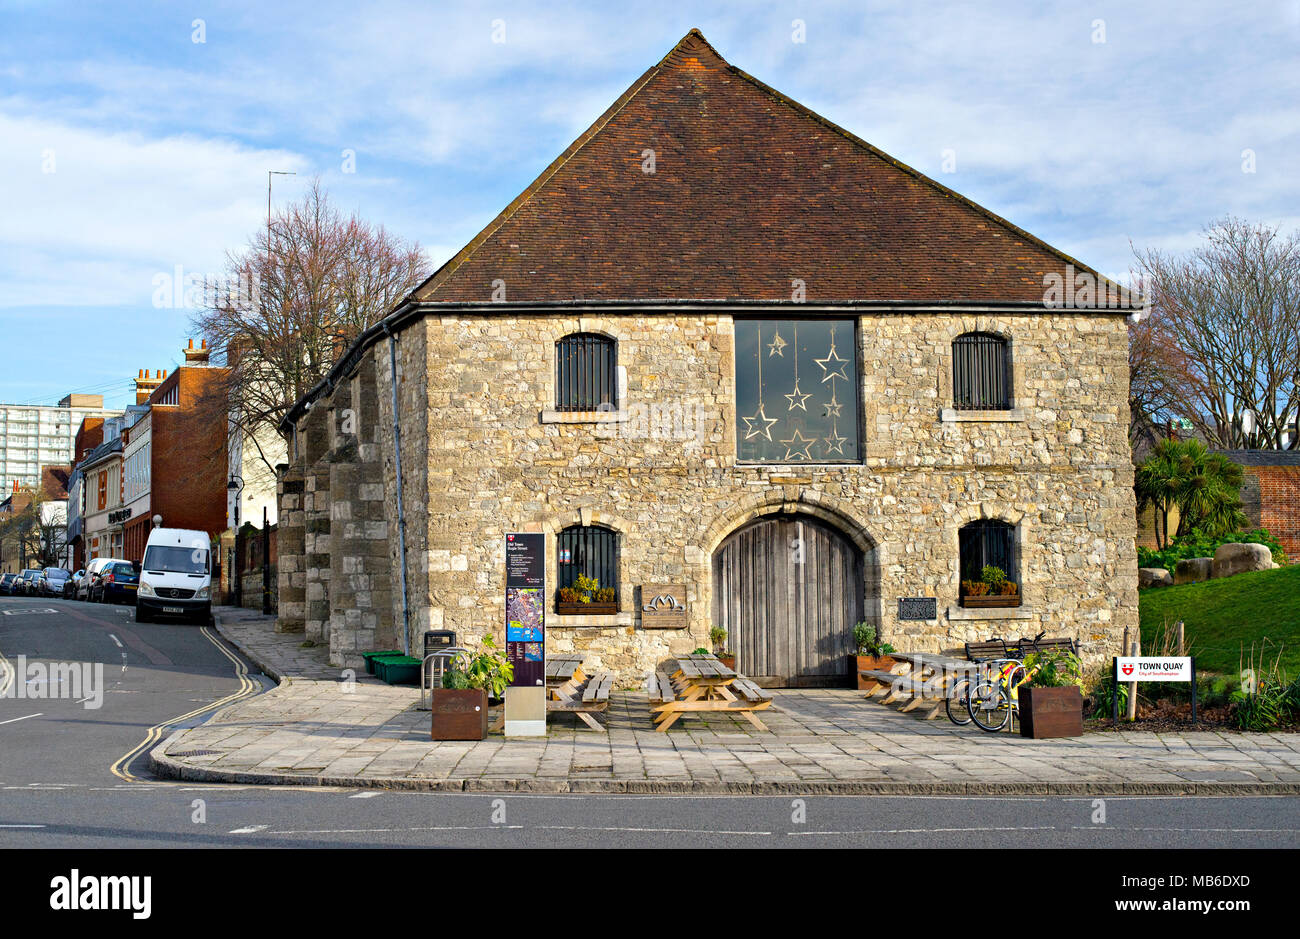 The mediaeval Wool House near the Town Quay in Southampton, England, was built in the 14th Century to store wool prior for export to Europe. - Stock Image